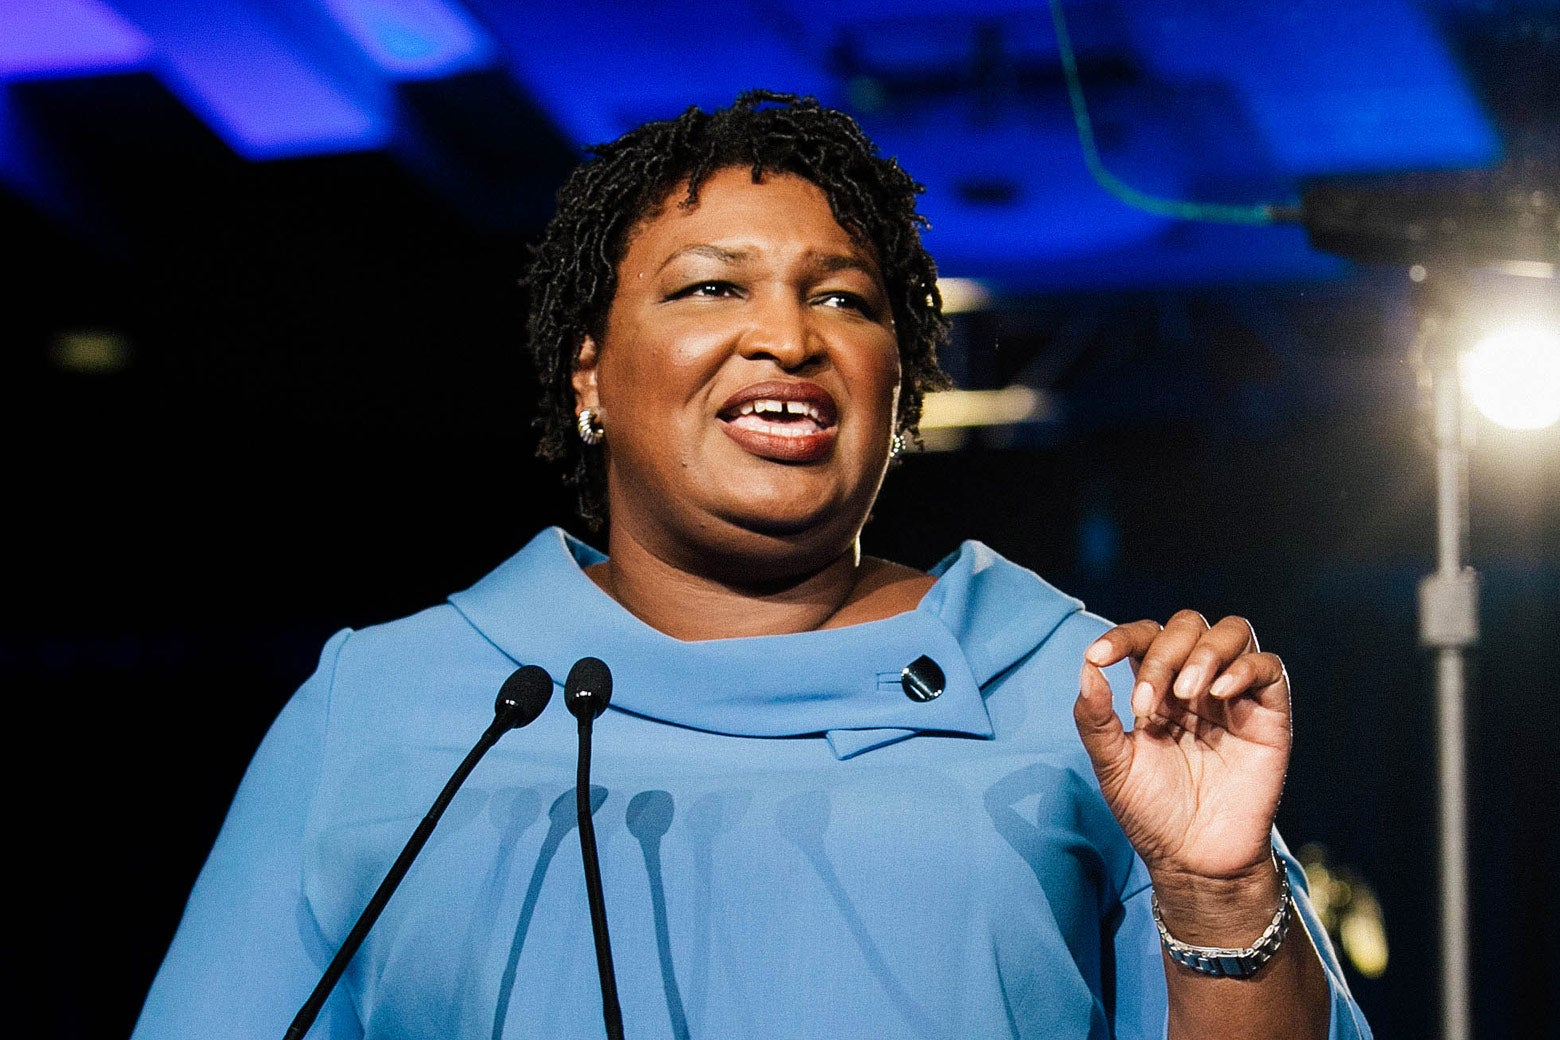 Stacey Abrams addresses supporters at an election watch party on Nov. 6 in Atlanta.